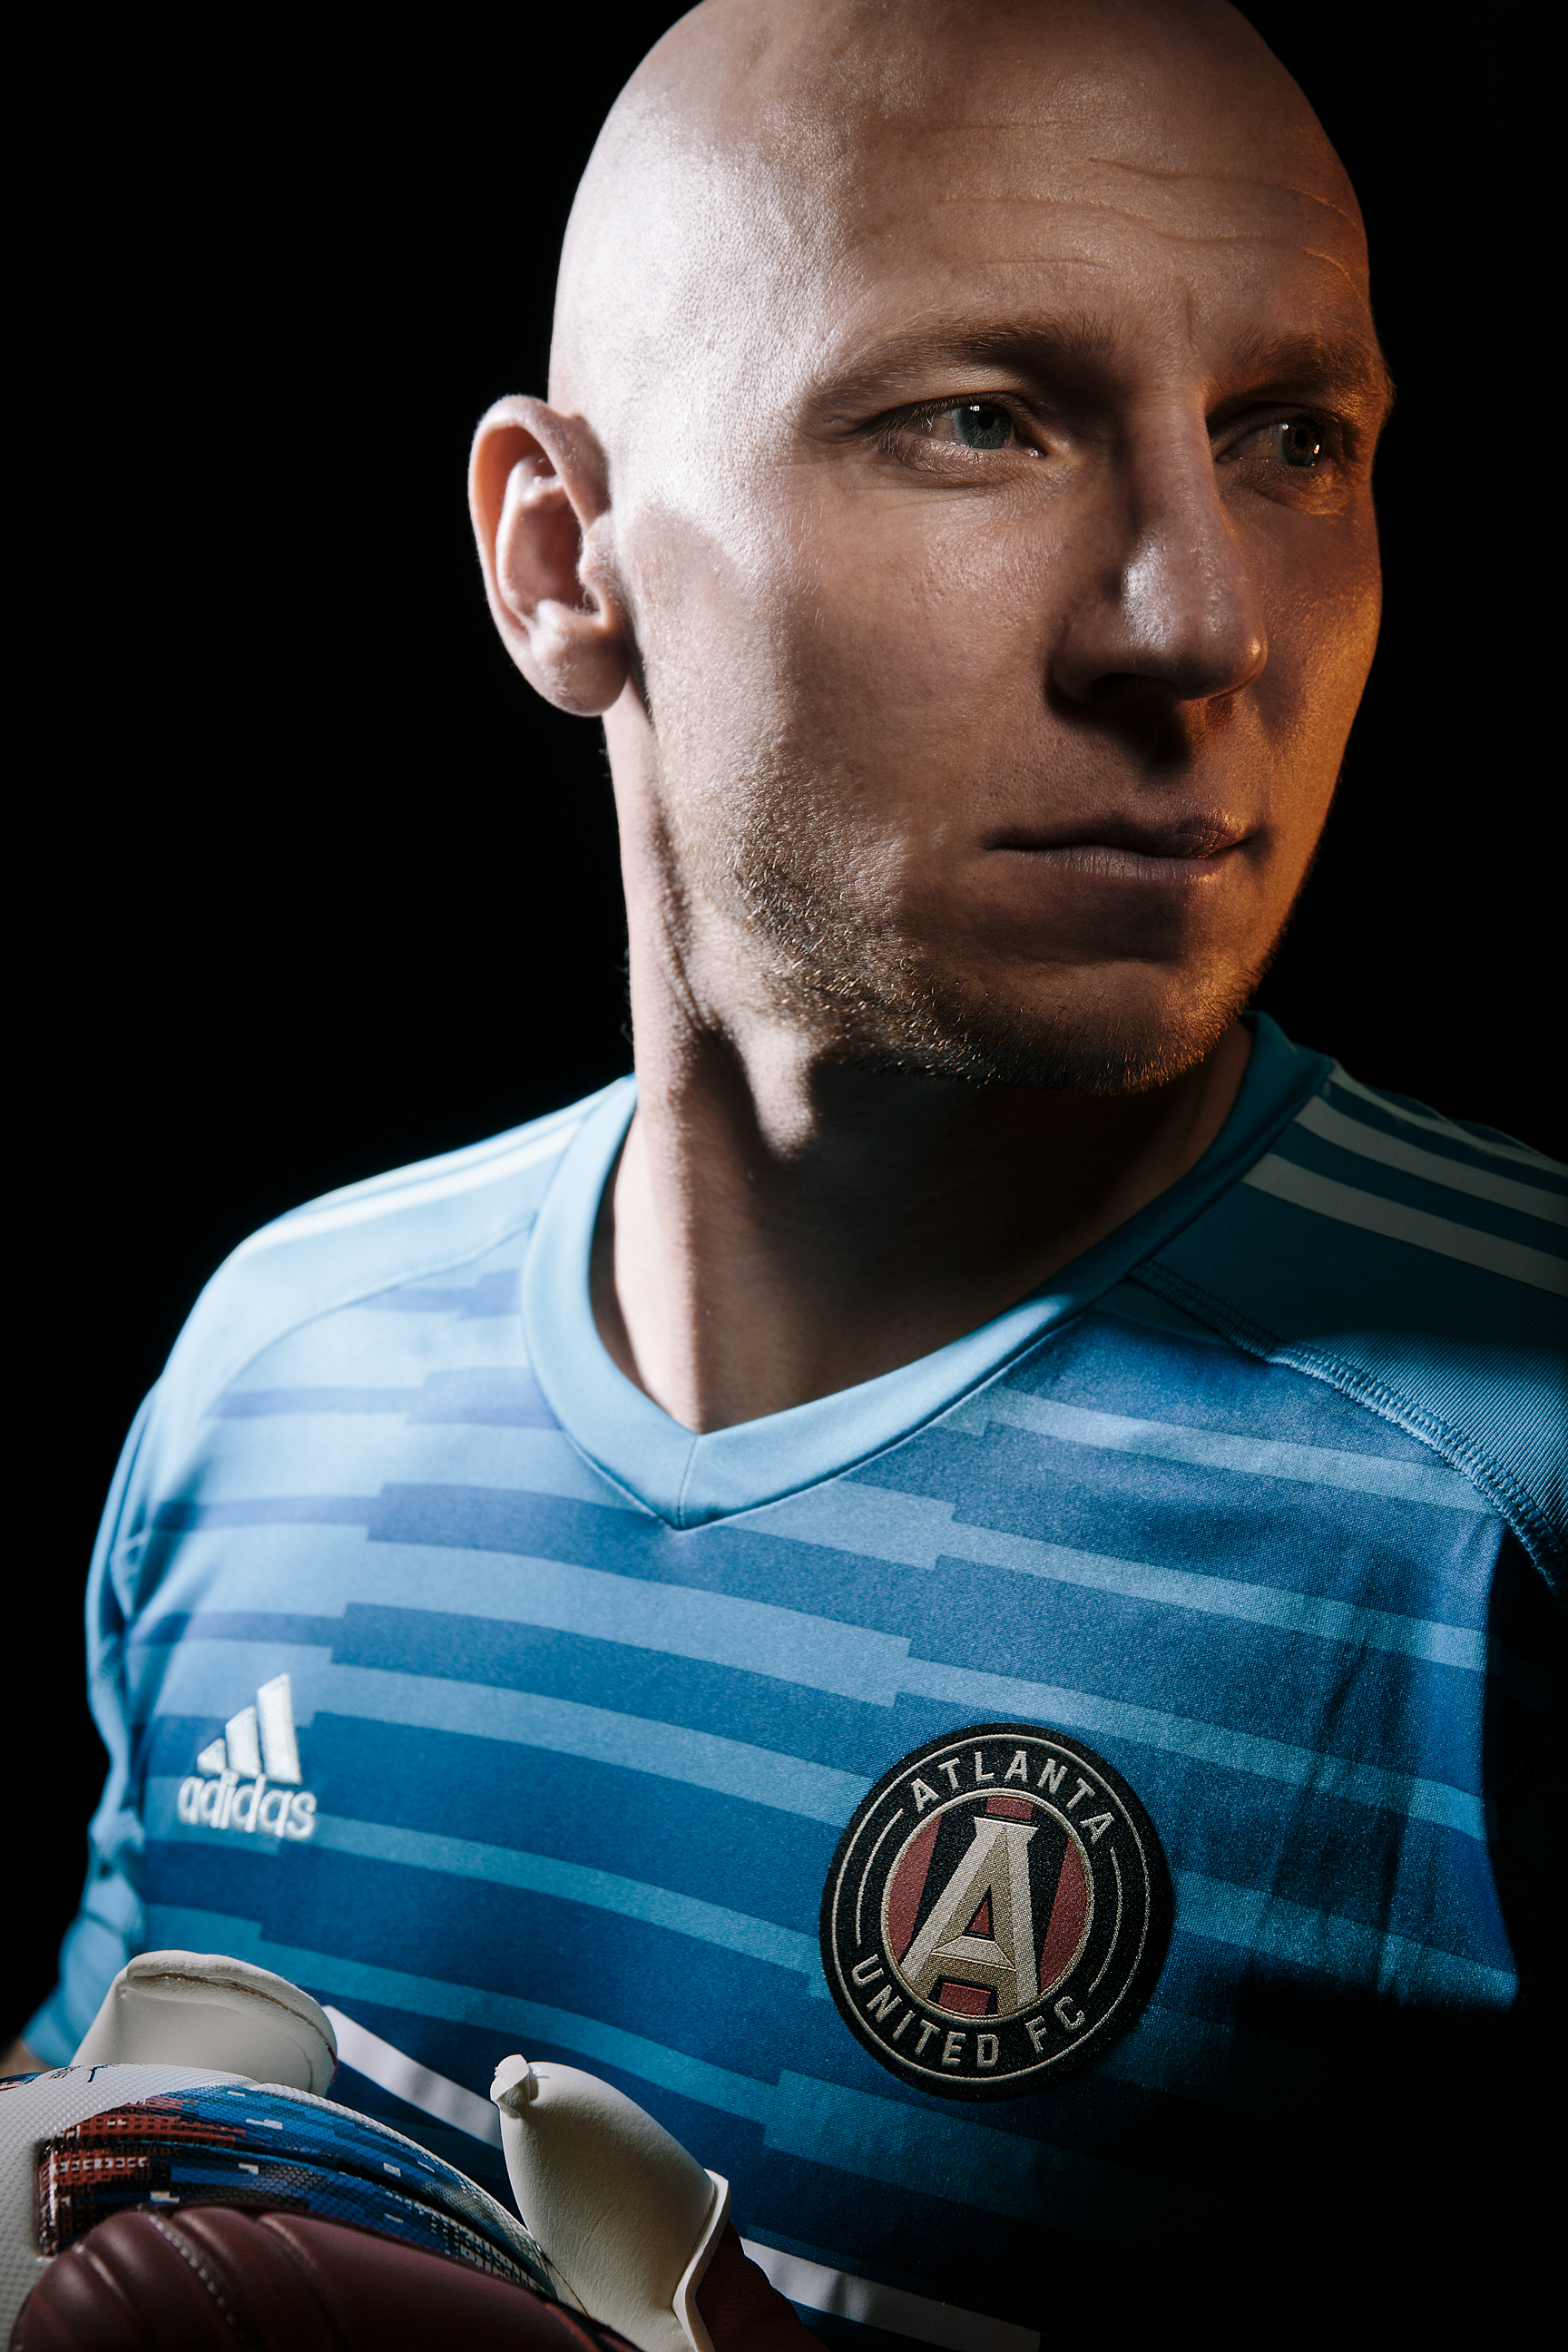 Atlanta united portraits - shot for ATL United